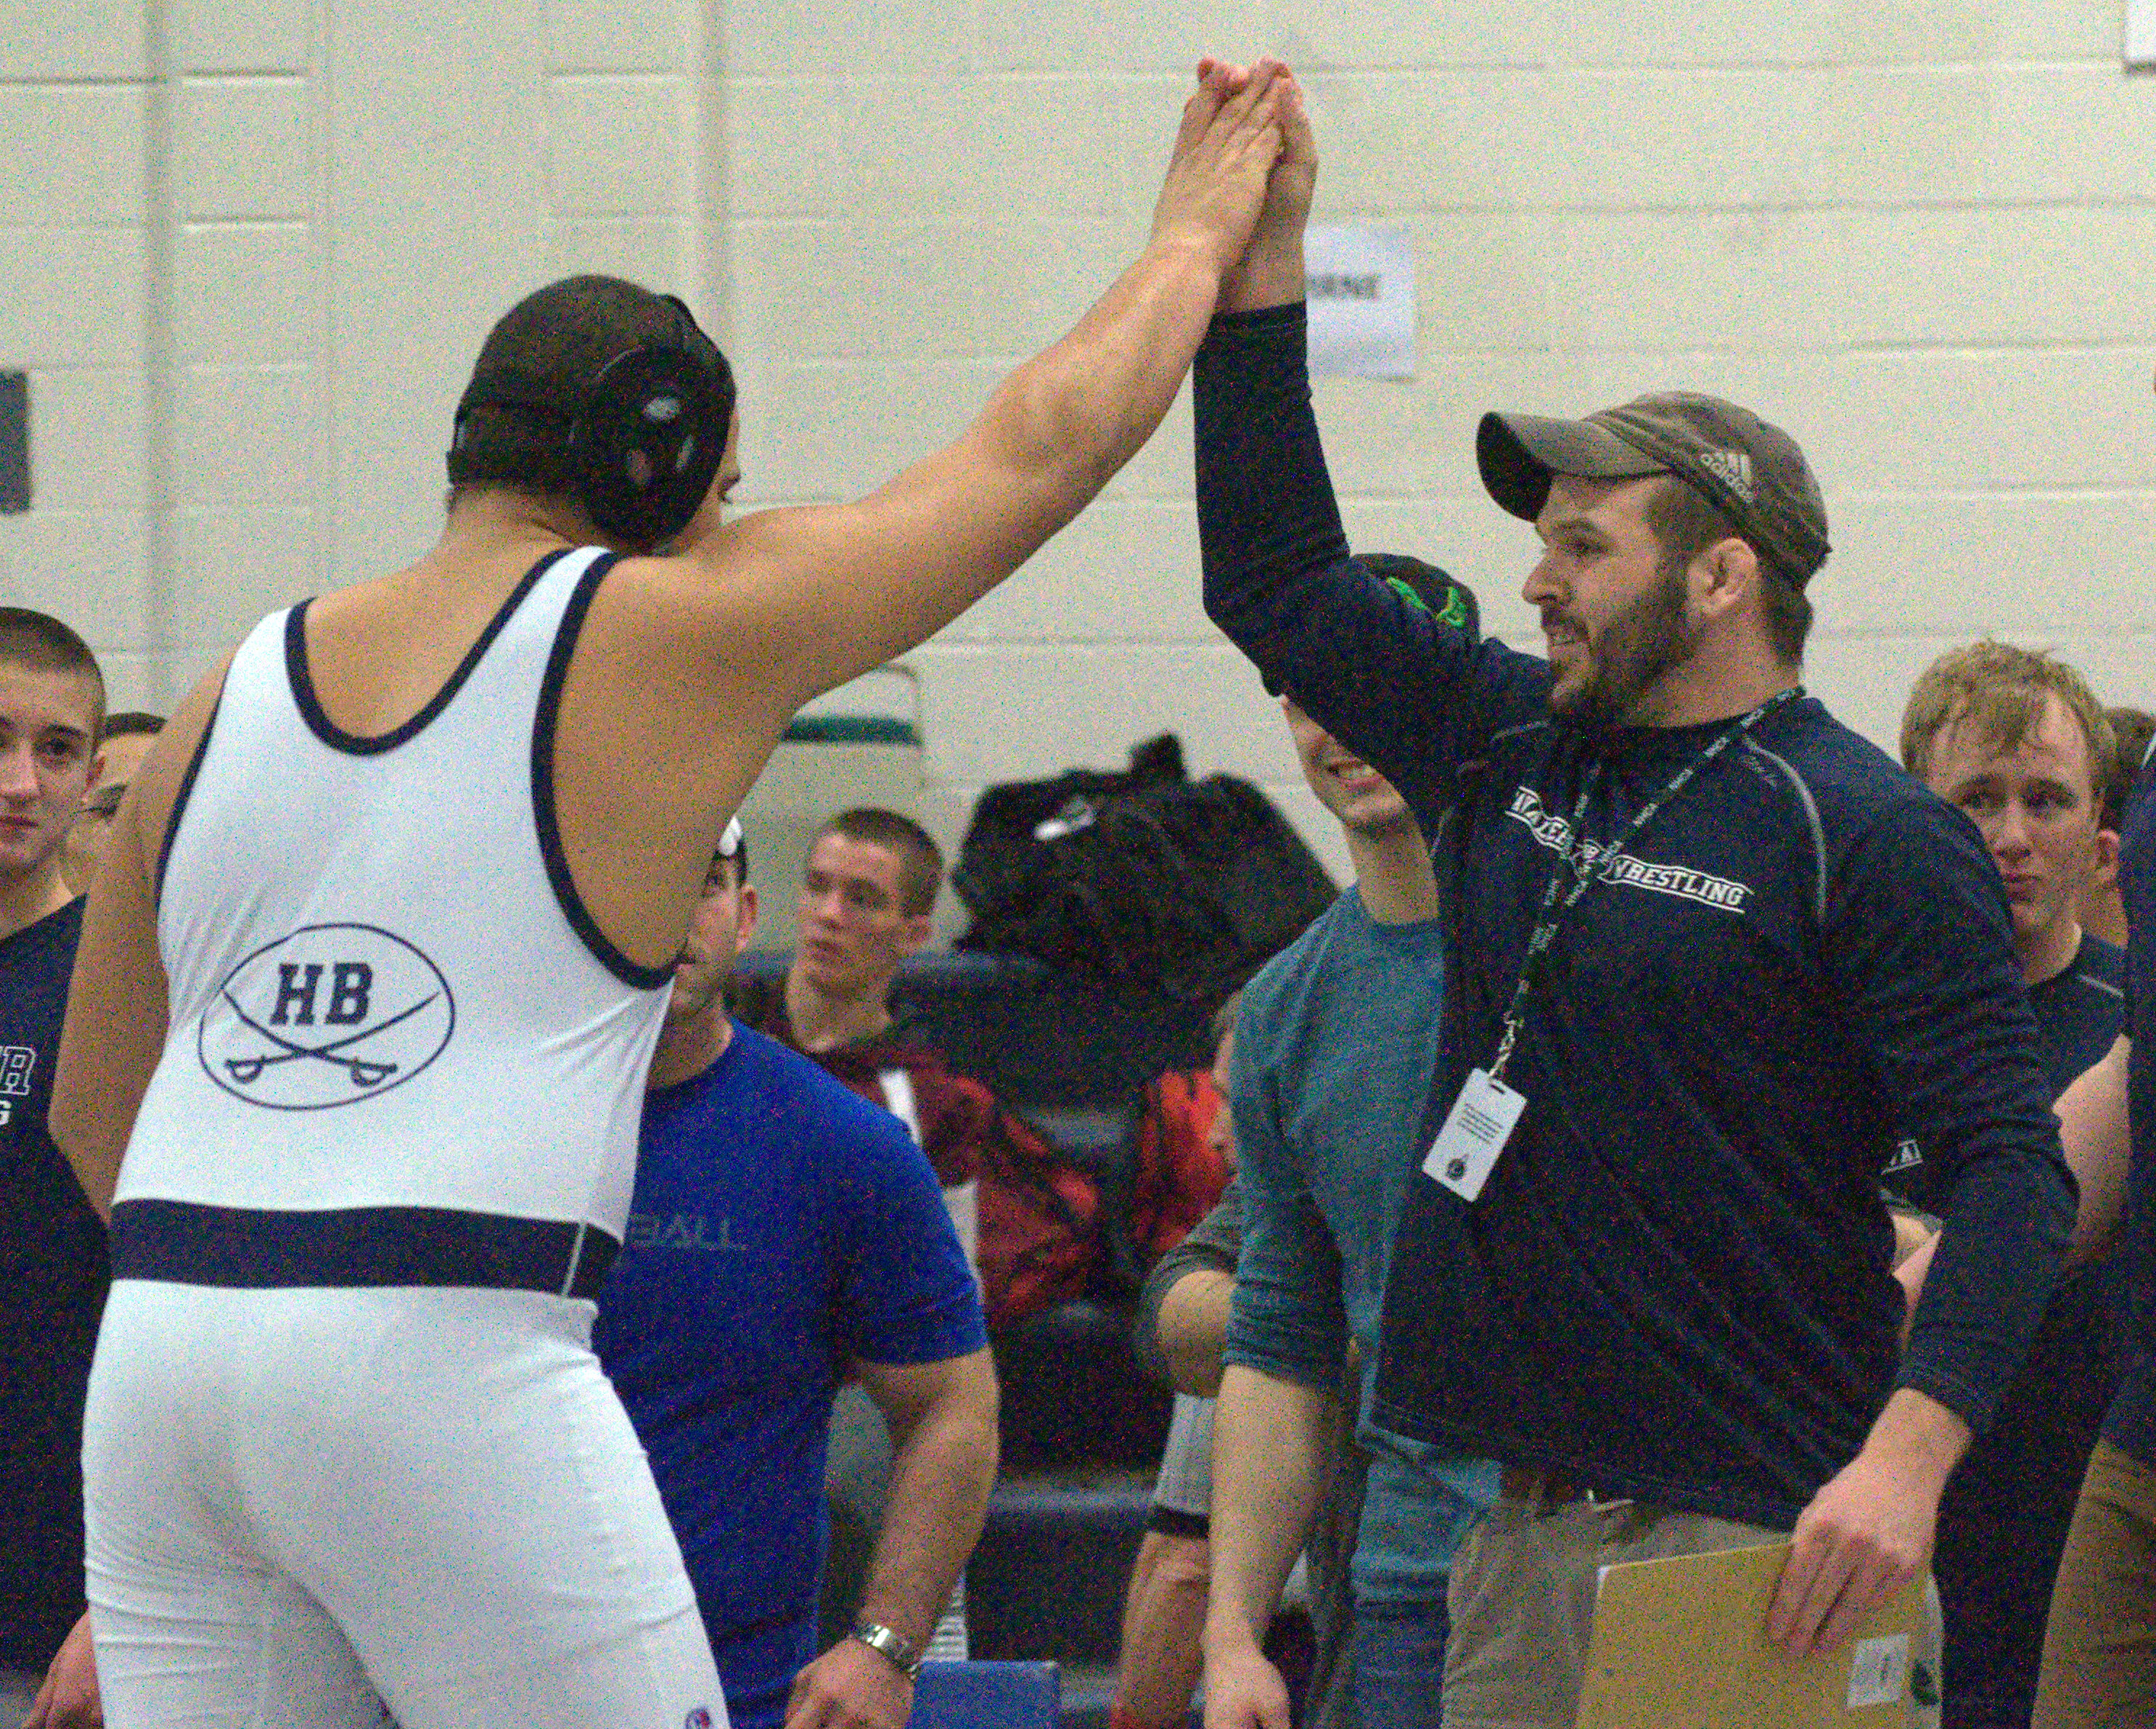 Hollis Brookline wrestling will be the subject of this winter's edition of The Season.